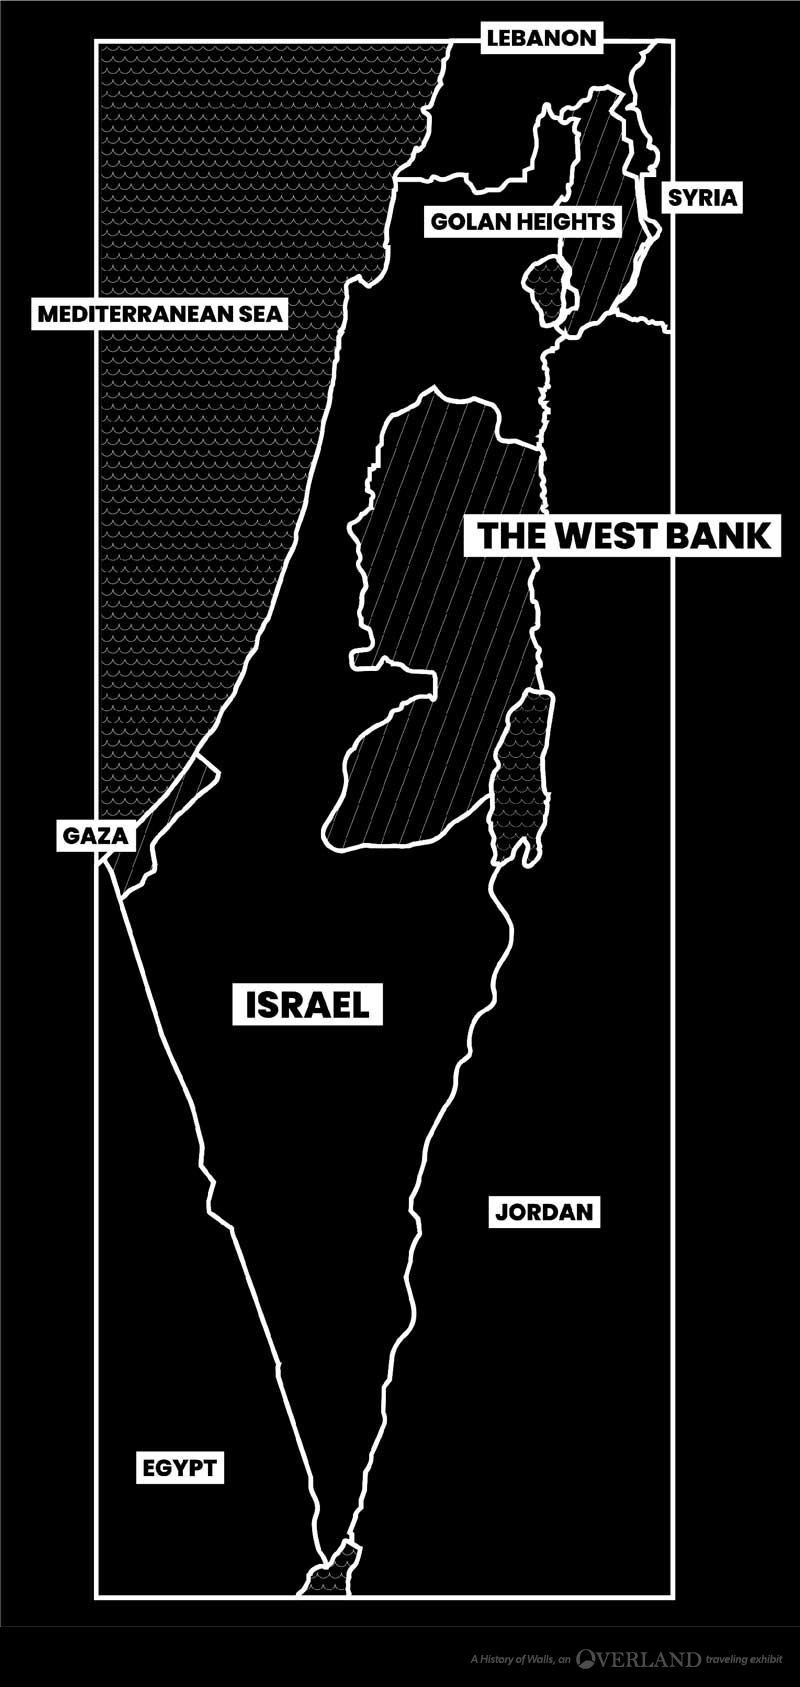 A simple black and white map showing the West Bank in relation to Israel and surrounding countries.